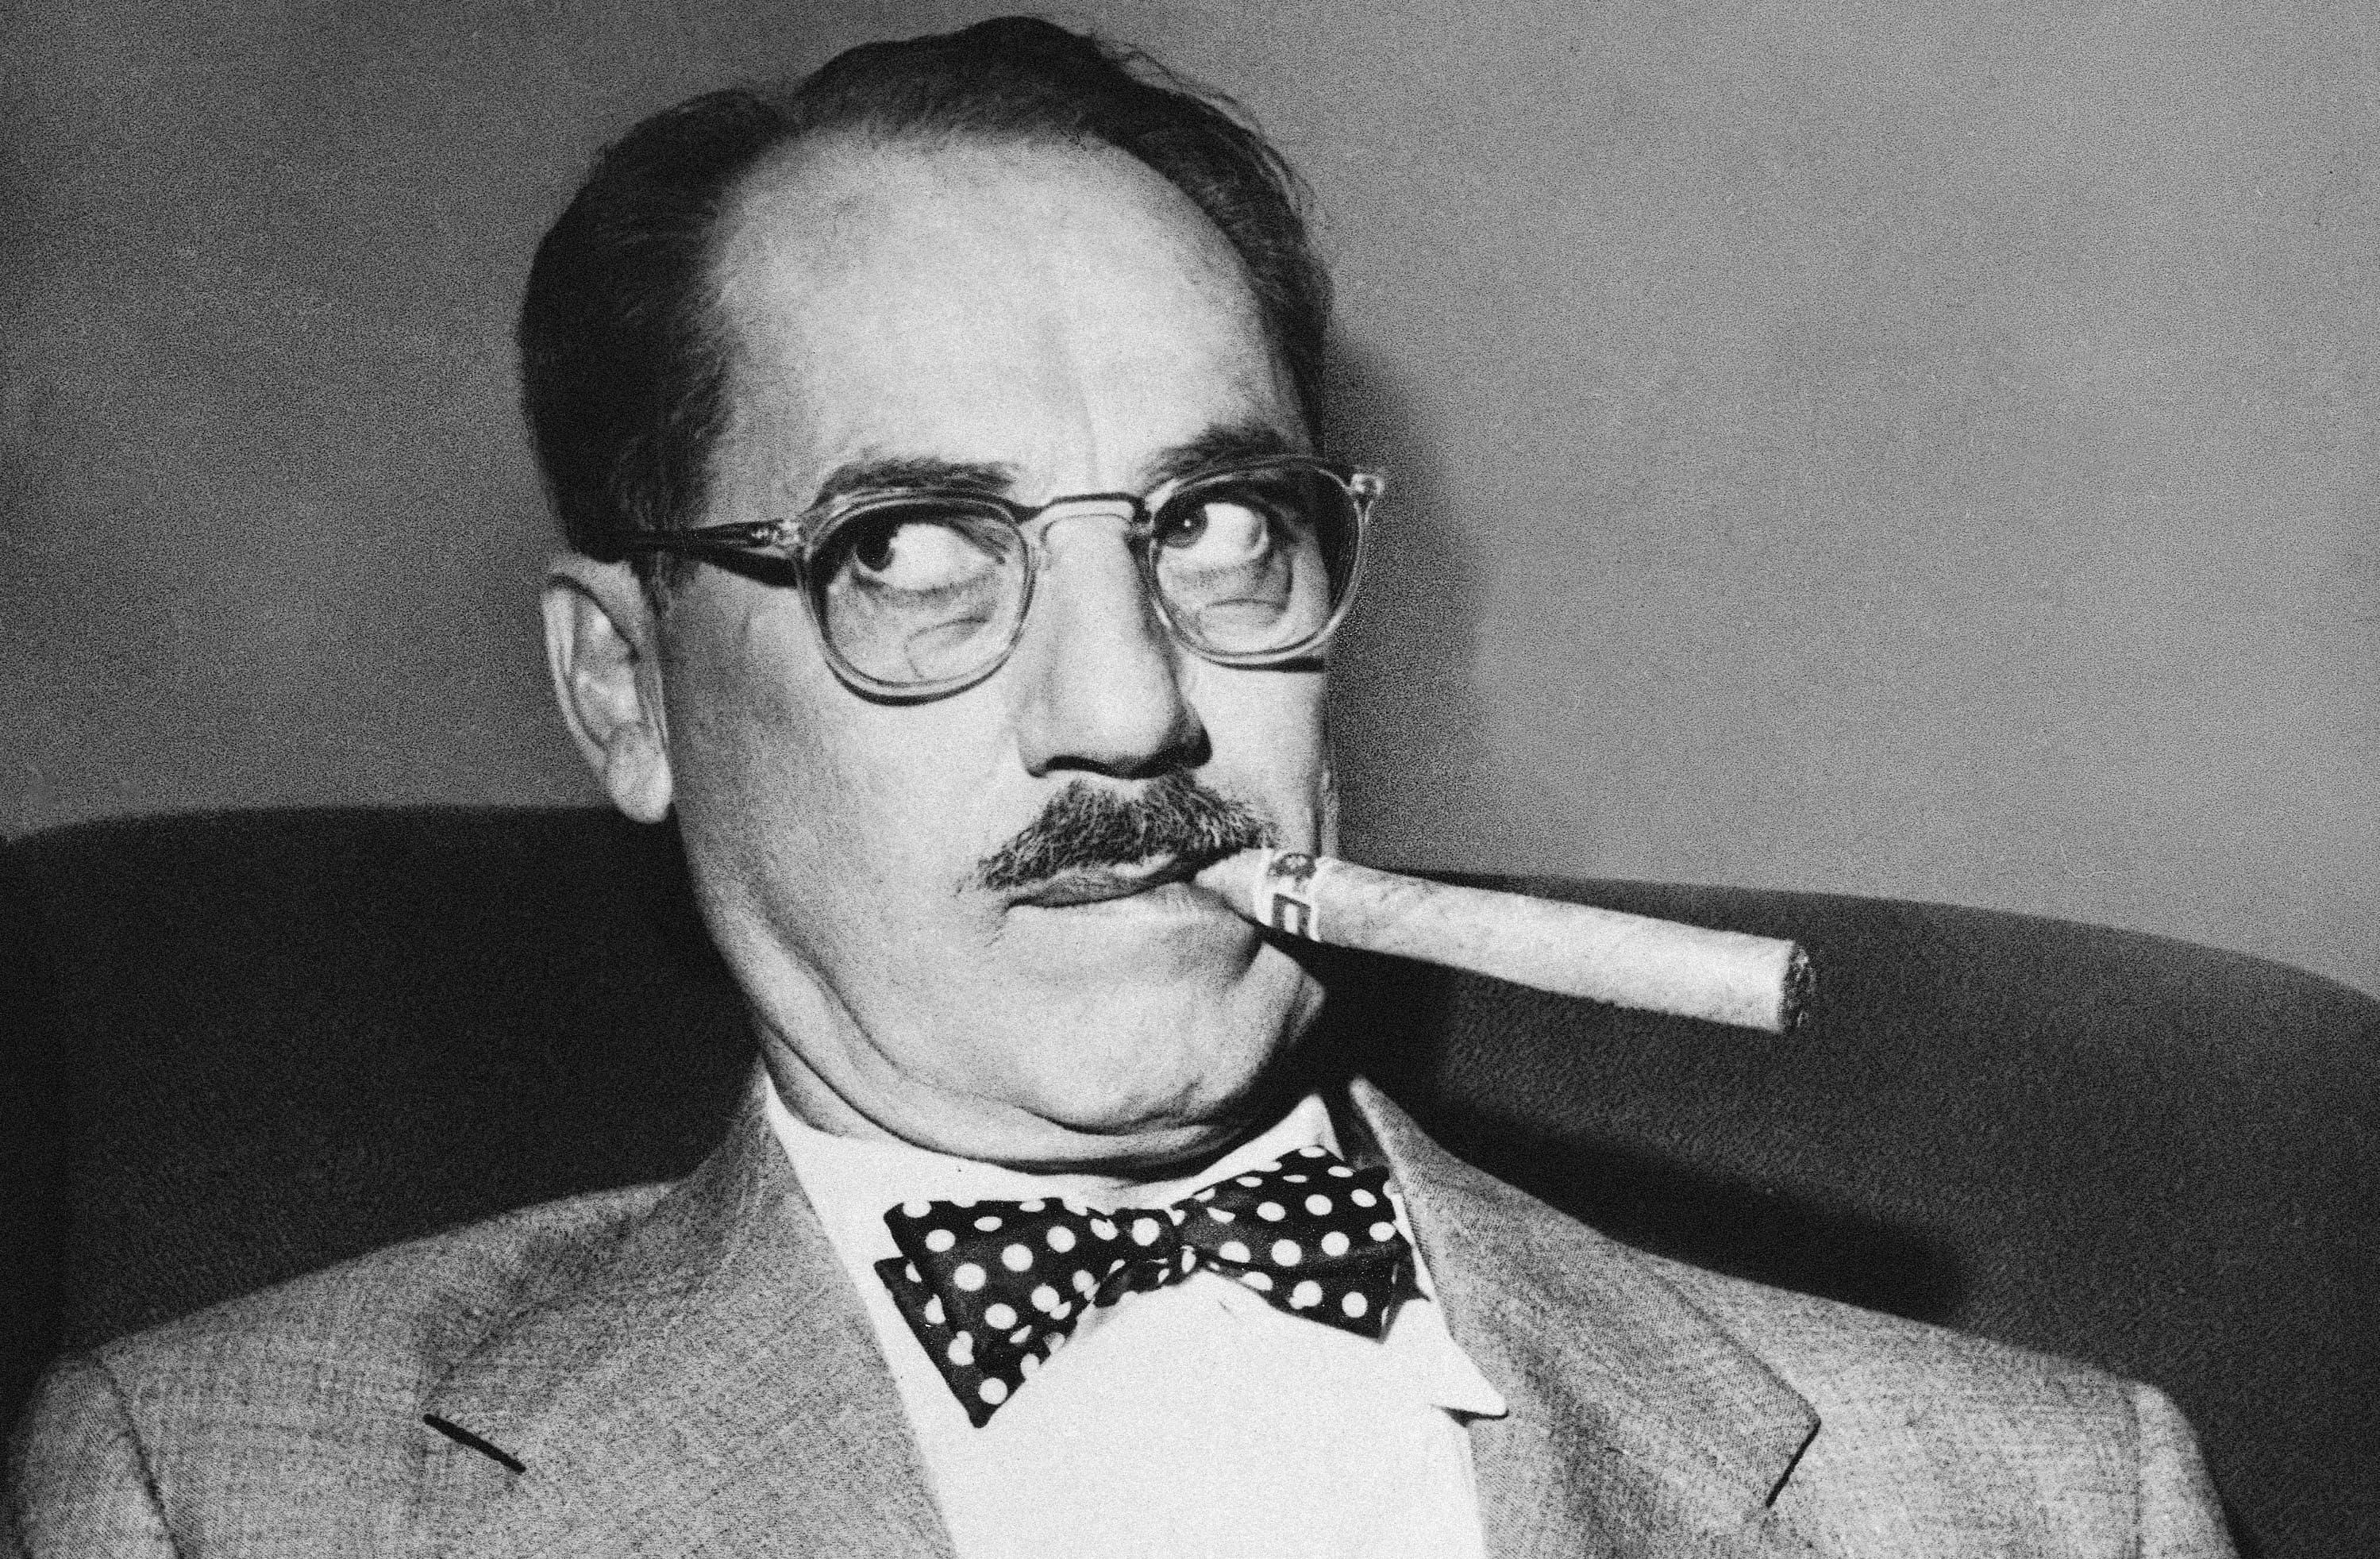 Groucho Marx Desktop wallpapers